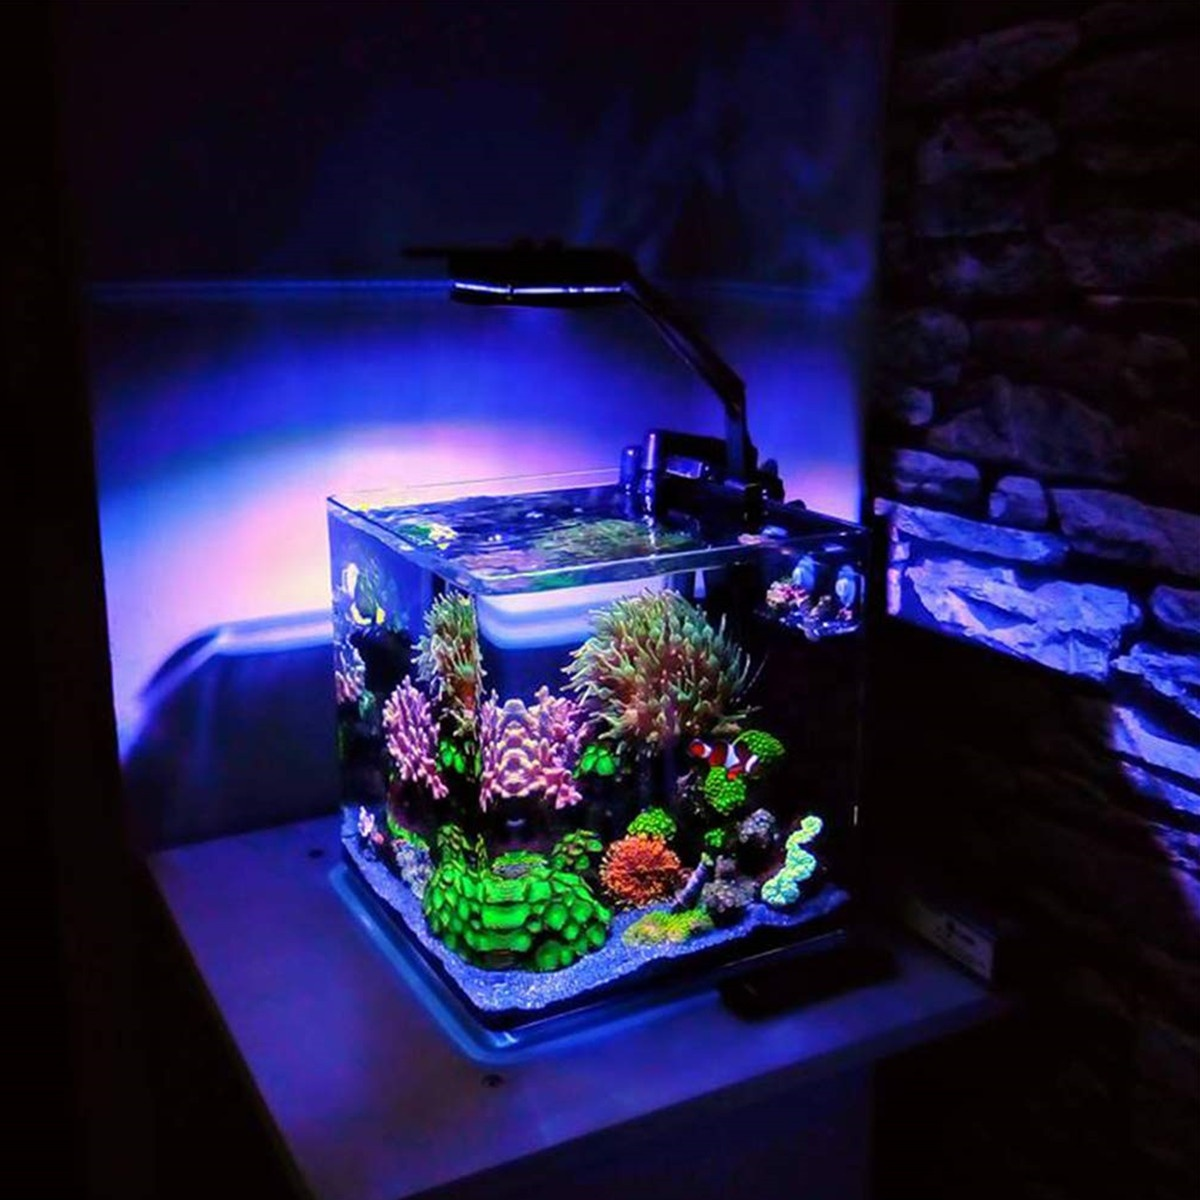 48&quot; LED Aquarium Light Planted Colorful 46cm Dimmable LED Light Aquarium LED Aquarium Lights for <strong>Fish</strong> and Coral Reef <strong>Fish</strong> Tan